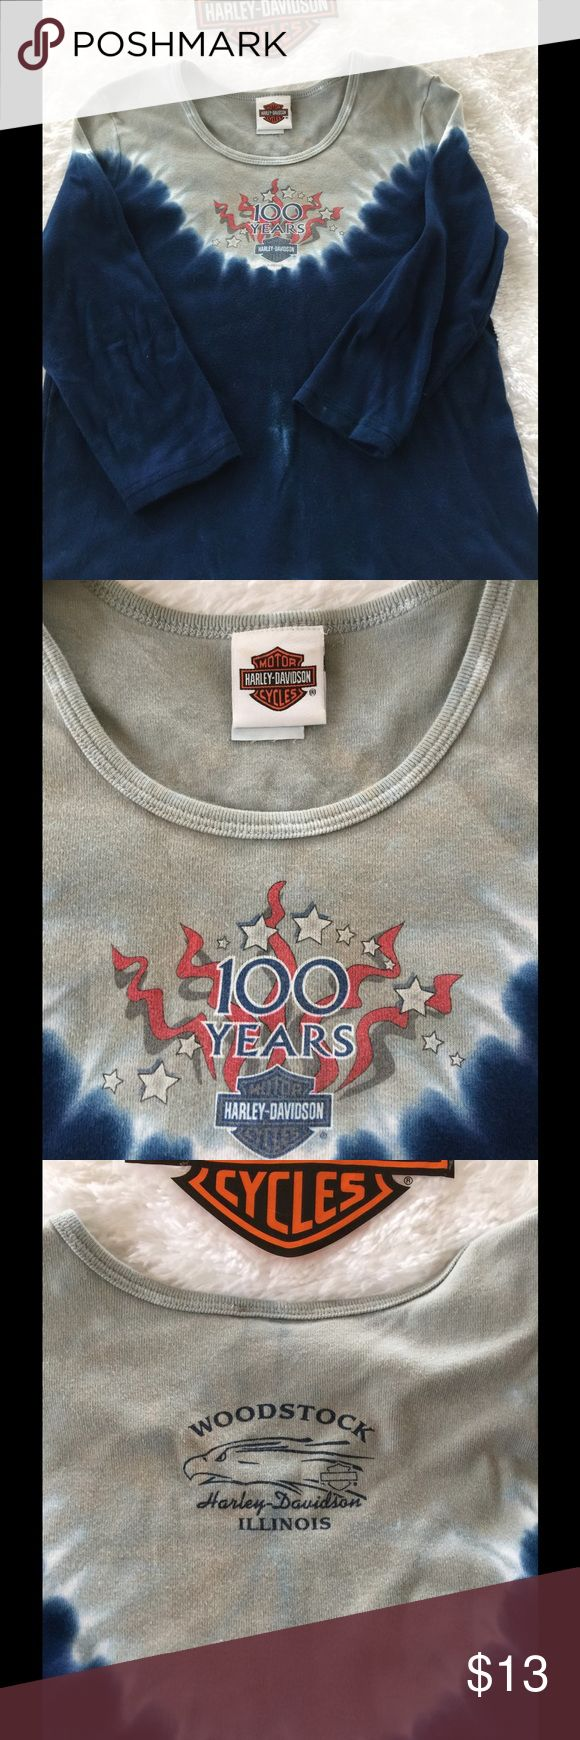 100 year anniversary Harley tee 3/4 sleeve anniversary shirt, light and dark blue tye dye Great used condition, no stains spots, rips, tears, smells. Woodstock IL on the back Harley-Davidson Tops Tees - Long Sleeve